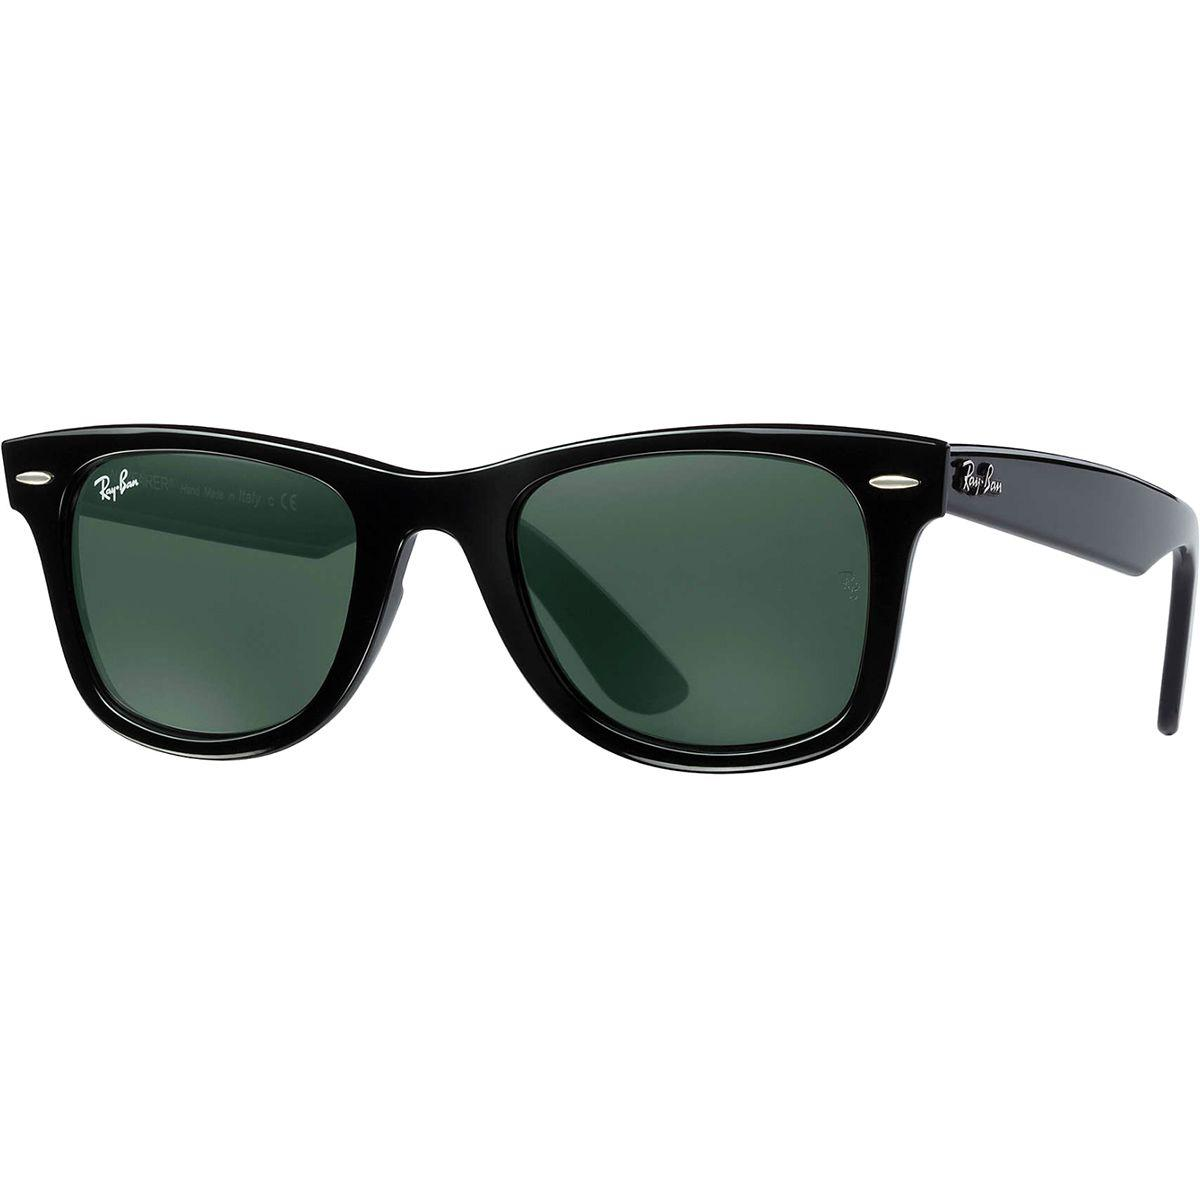 be20abfadd Ray Ban Rb4190 Clubmaster Square - Restaurant and Palinka Bar